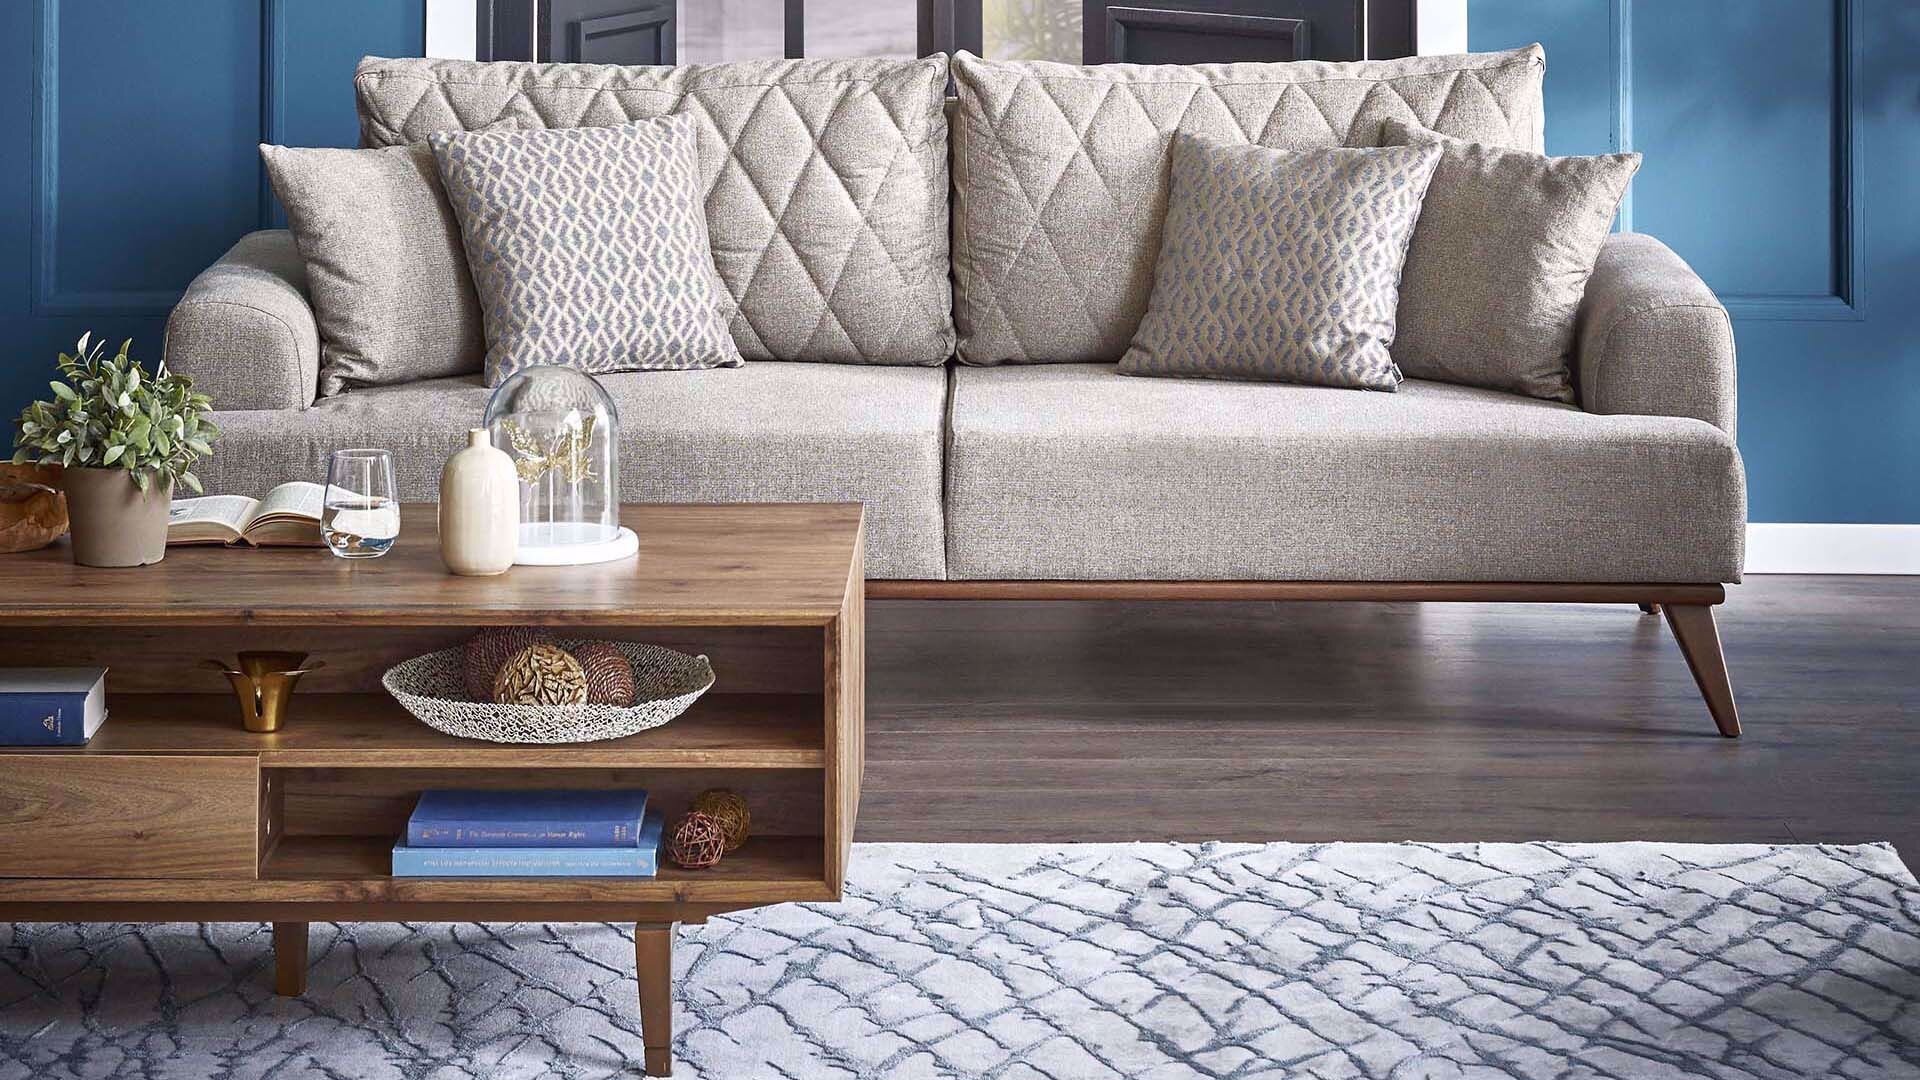 Messina Three-Seat Sofa (Doubles as Bed)